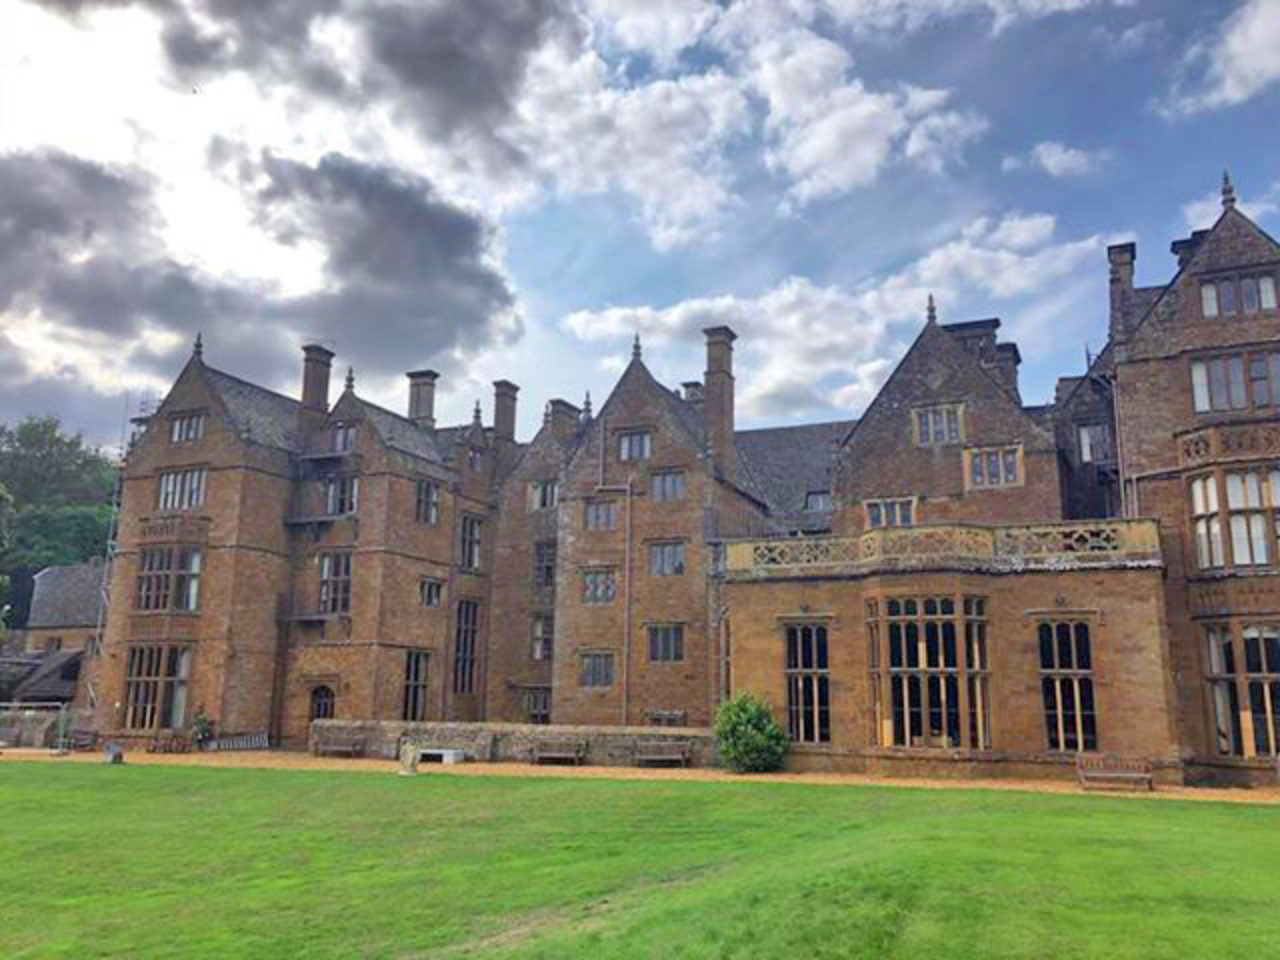 The back of Wroxton Abbey